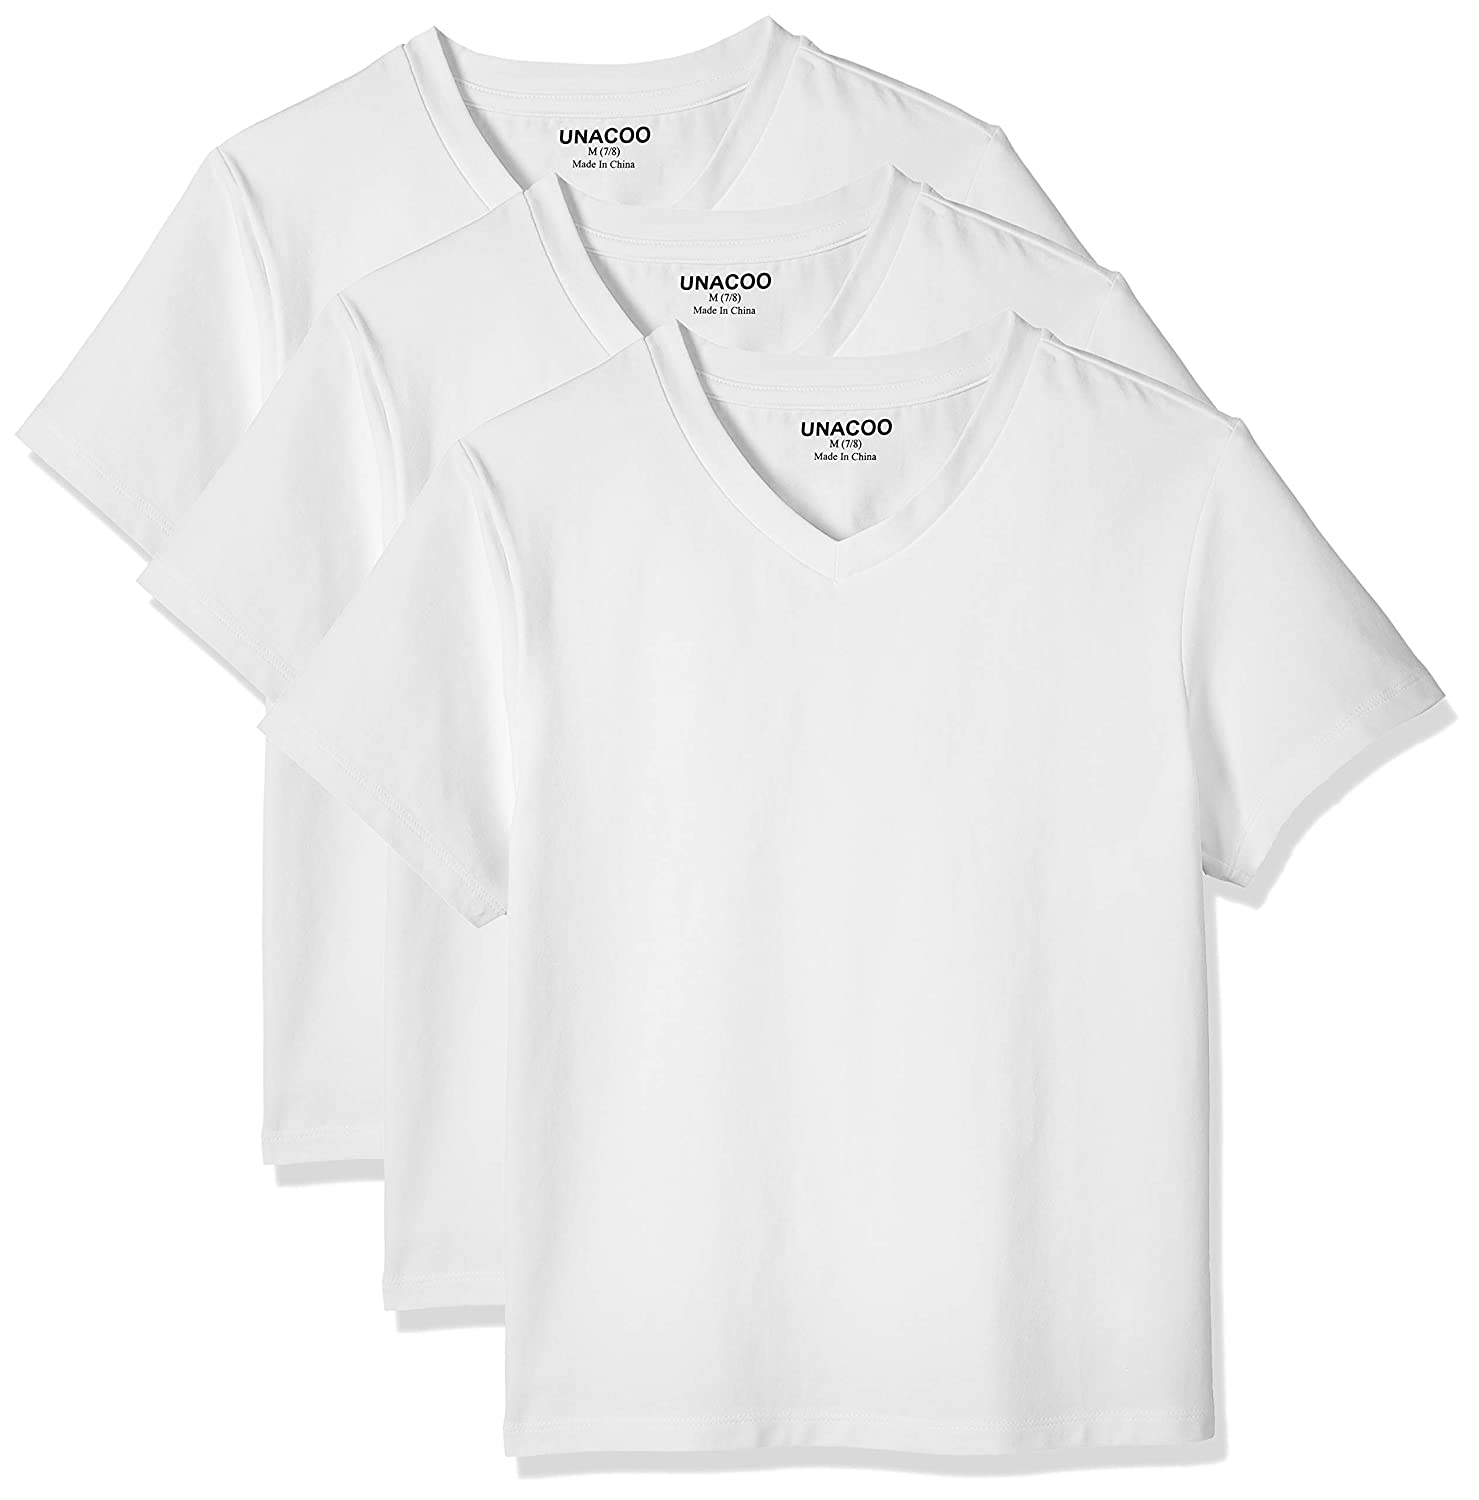 UNACOO 3 Packs Loose Fiting V Neck Stretch Tee Shirts Short Sleeve for Boys and Girls